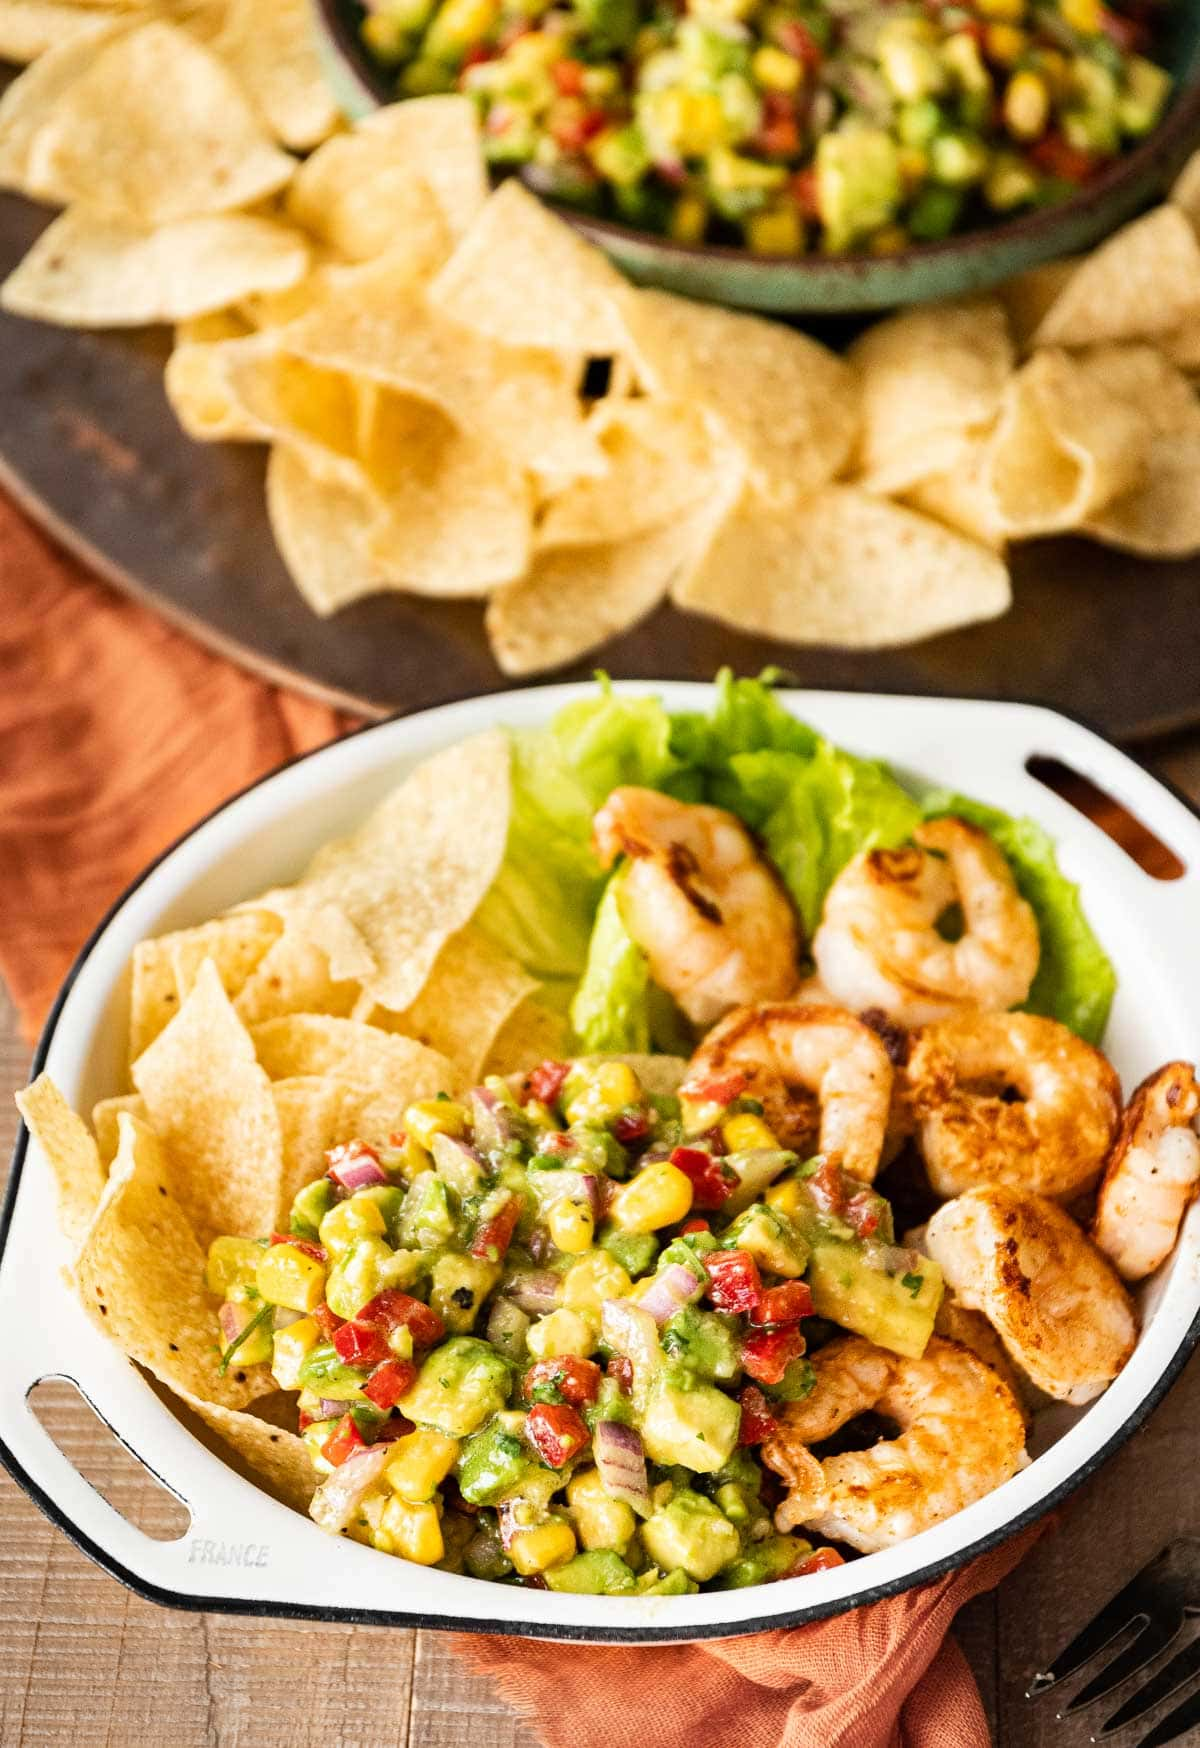 Avocado Salsa served with tortilla chips, lettuce and grilled shrimp